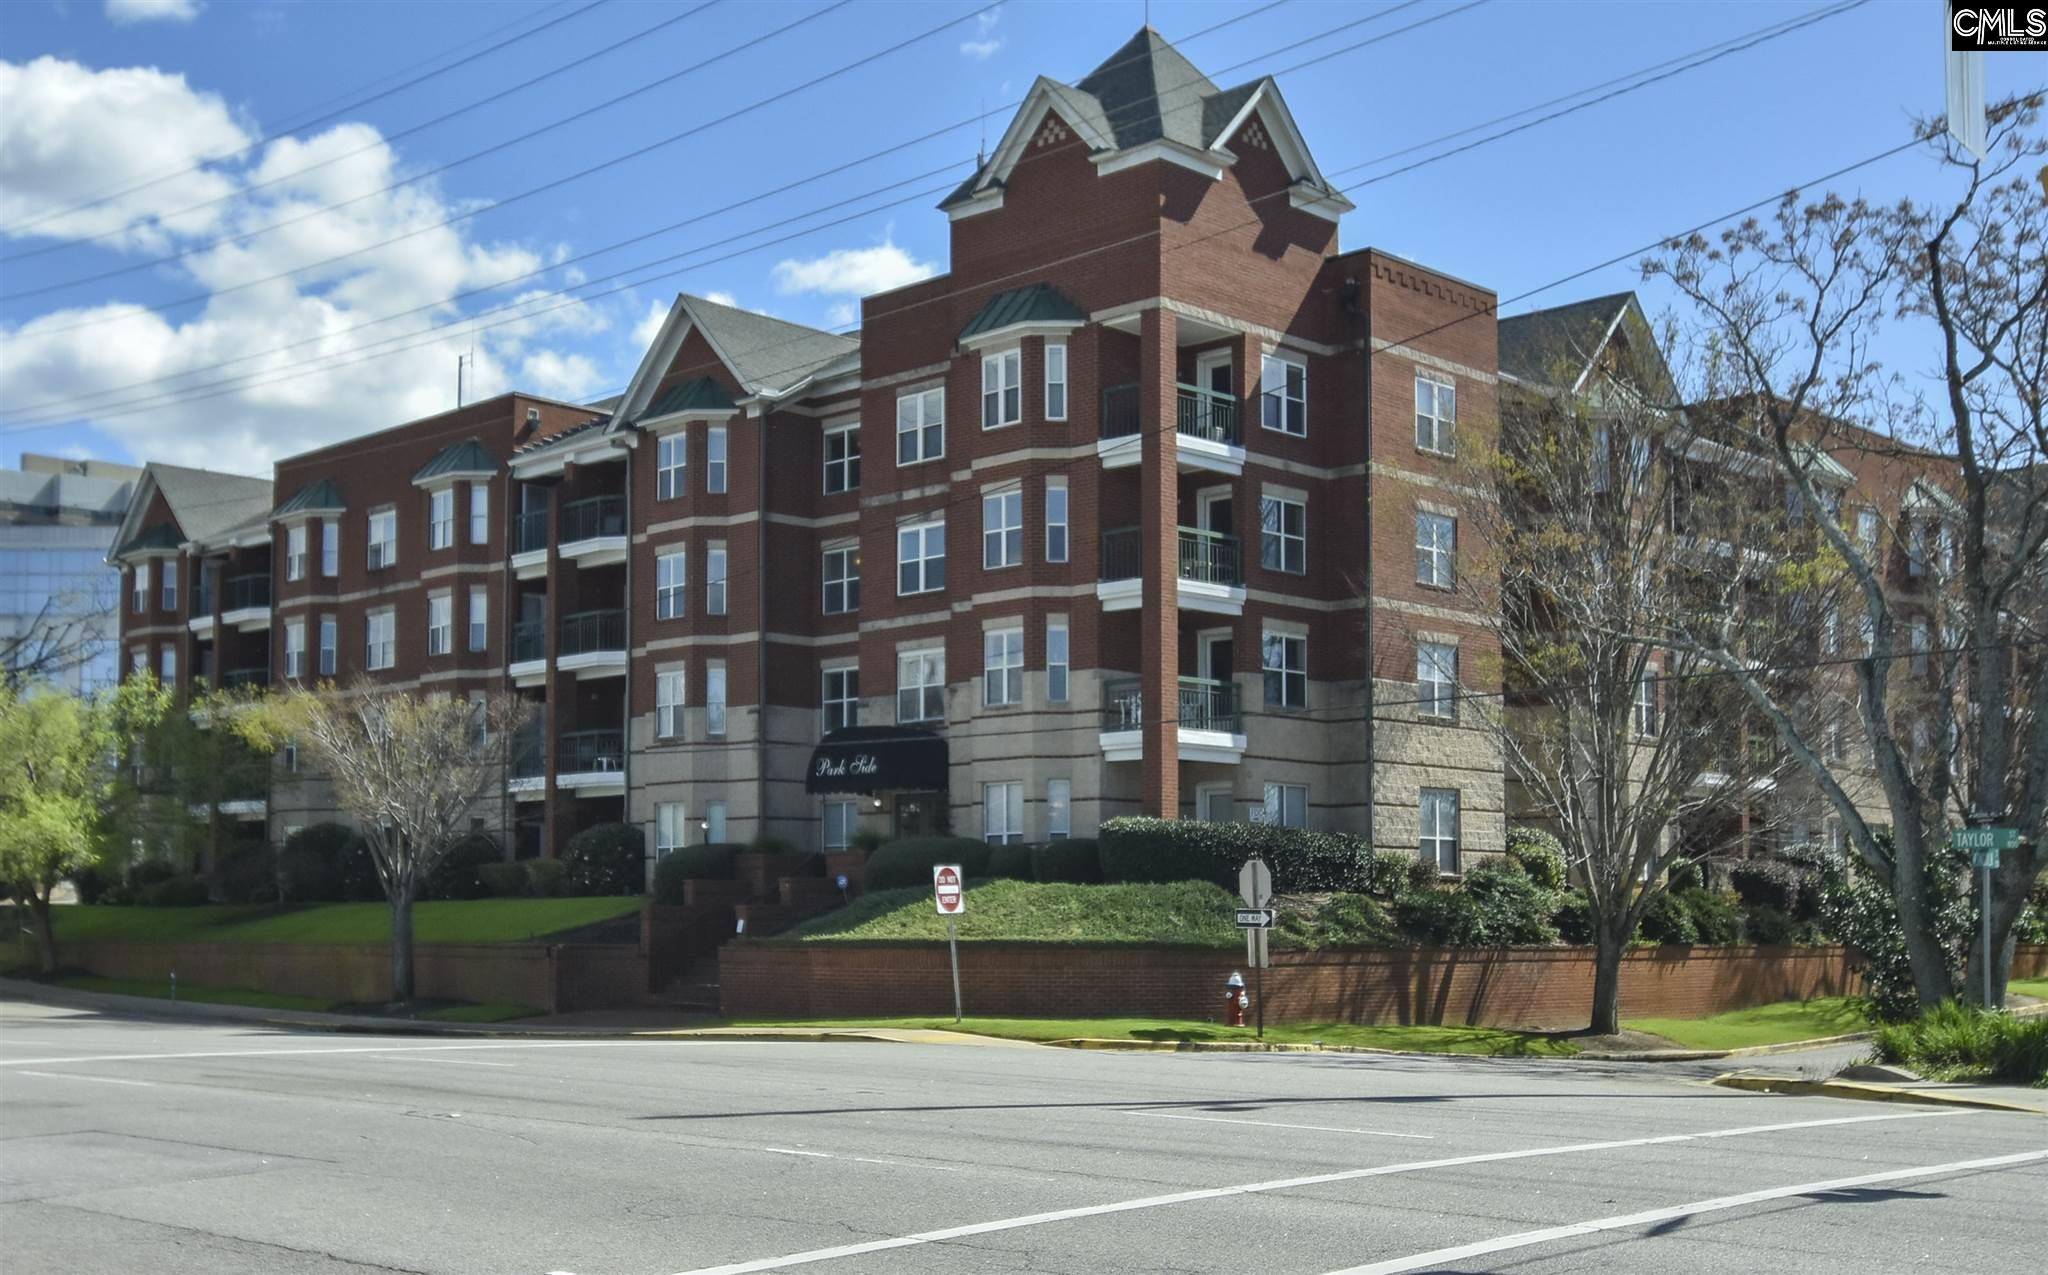 900 Taylor Columbia, SC 29201-2755